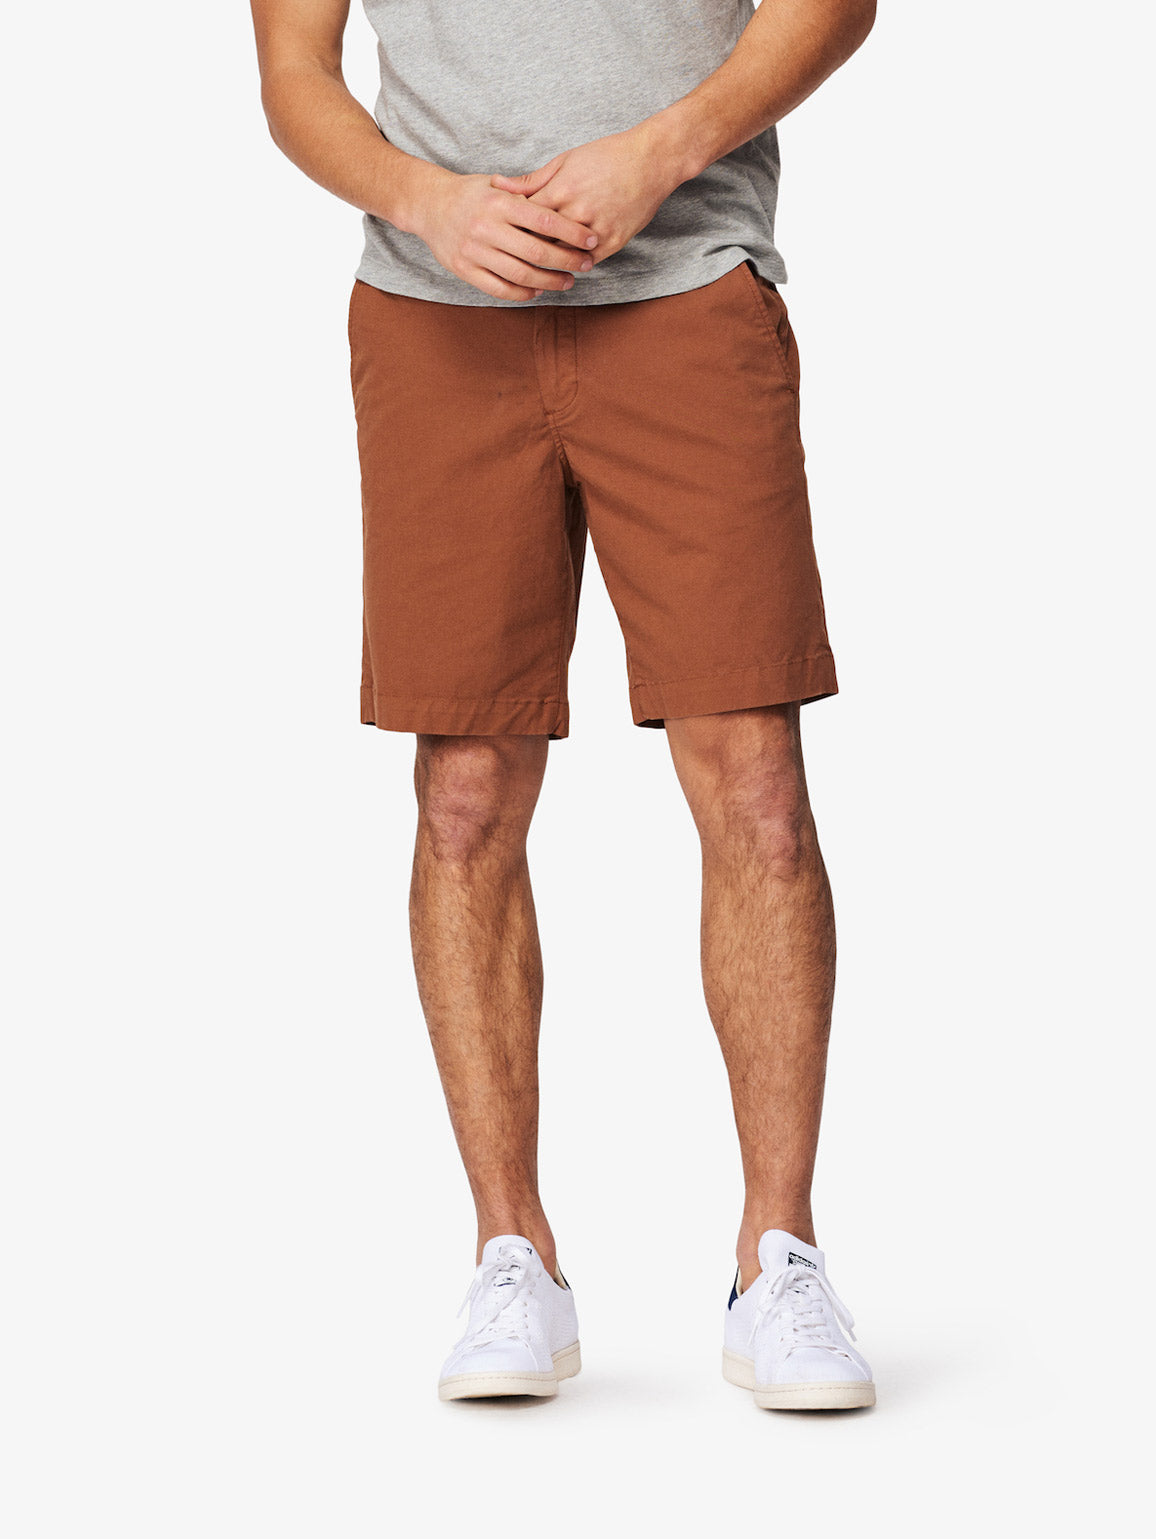 Men - Jake Chino Short | Terracotta - DL1961